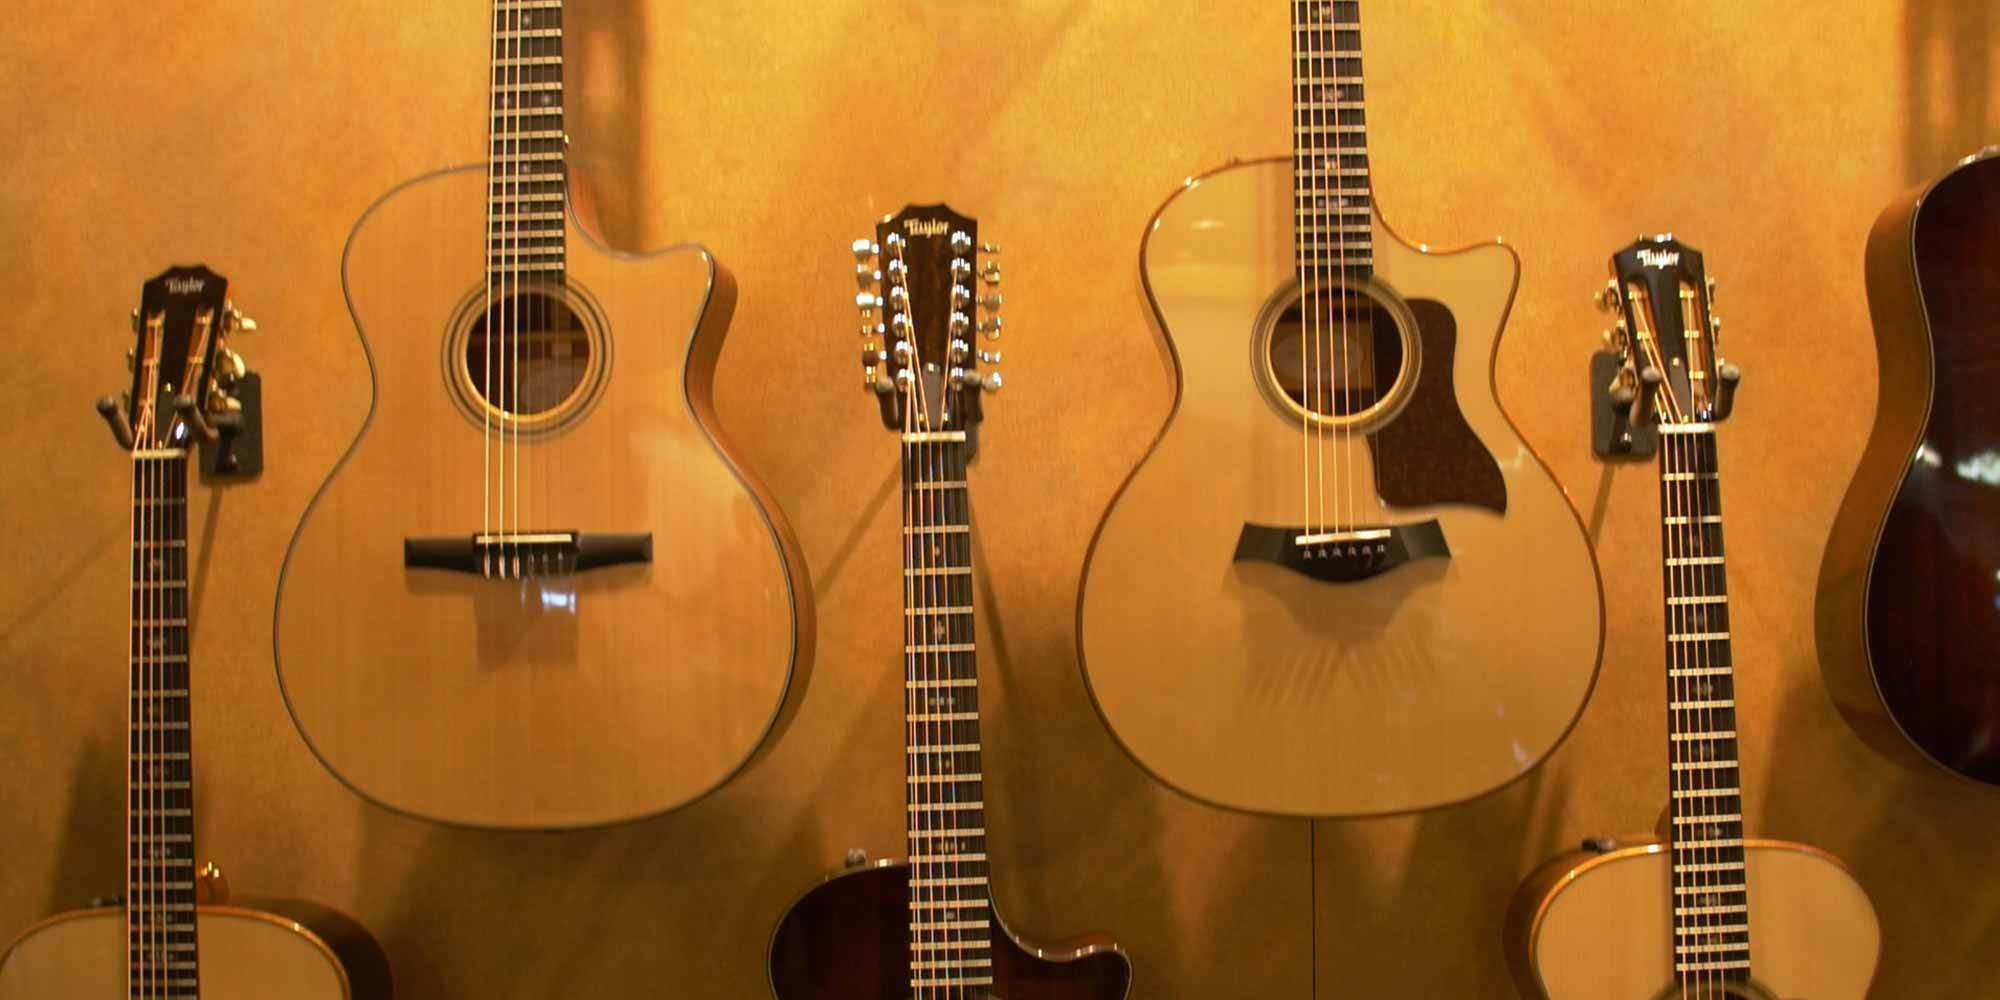 Taylor Guitars 700 Series Redesign & How Taylor Designs a New Guitar